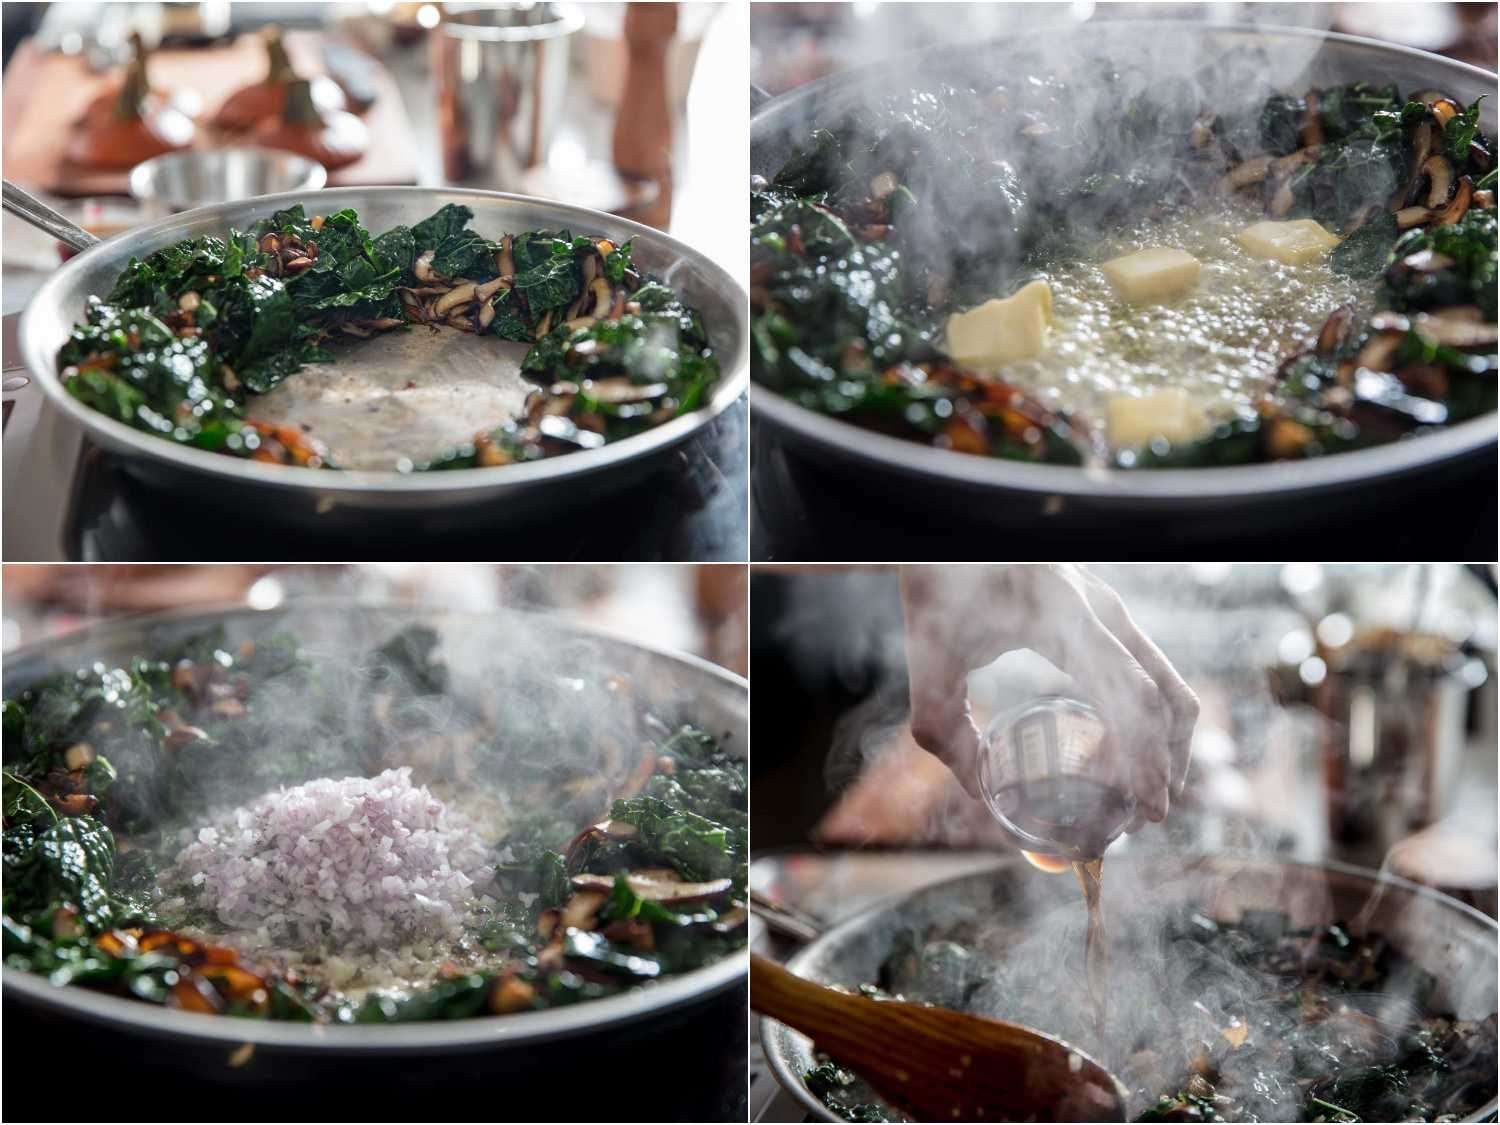 Process shots of adding butter and shallots and sherry to sautéed mushrooms and kale.